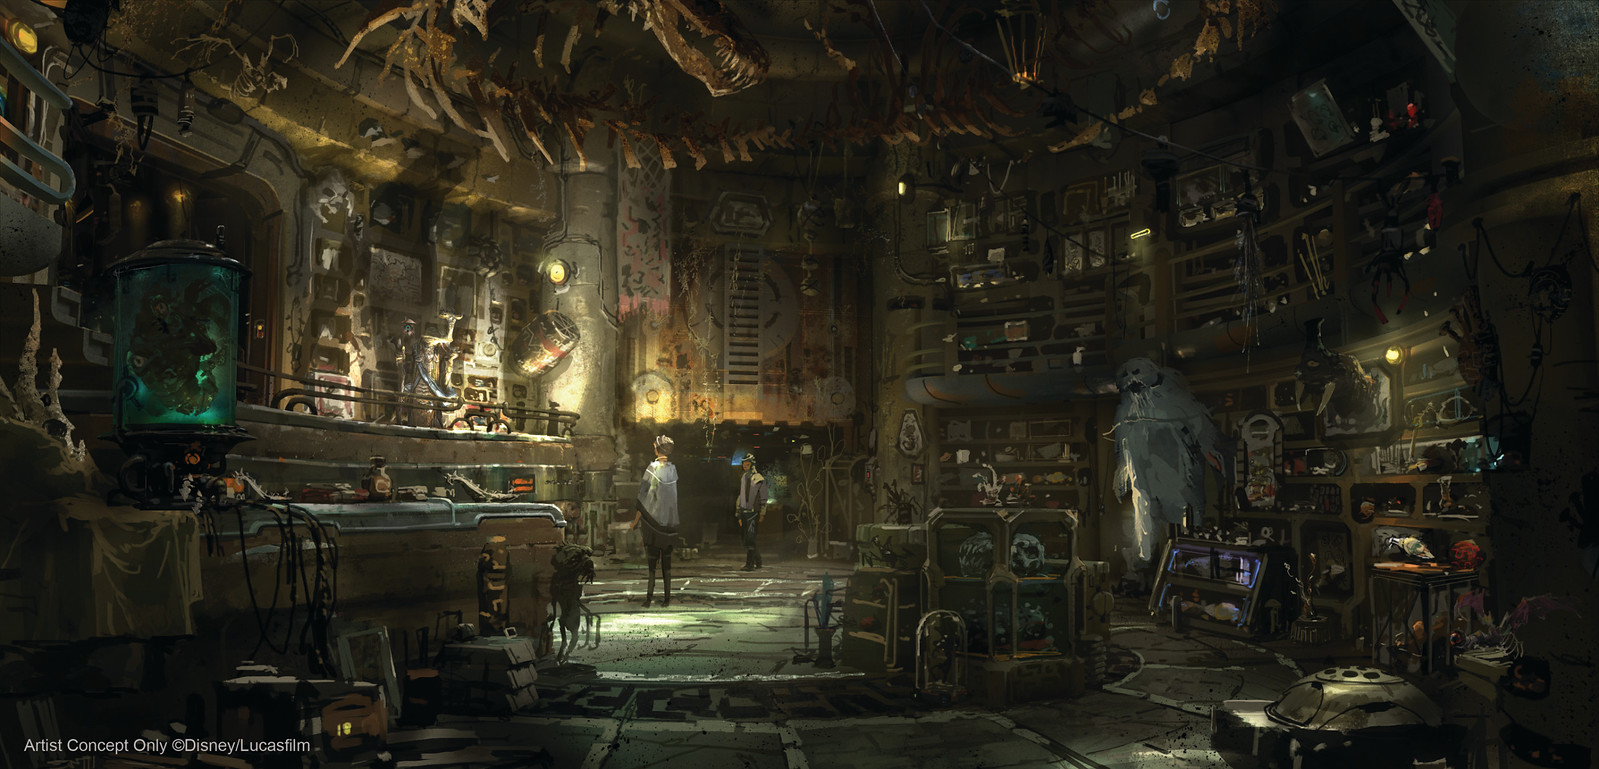 Dok-Ondar's Den of Antiquities in Star Wars: Galaxy's Edge will feature rare items from across the galaxy for sale, all part of Dok-Ondar's collection. Items will represent different eras of the Star Wars galaxy, including holocrons, ancient Jedi and Sith artifacts, lightsabers and more. (Courtesy of Disney Parks)